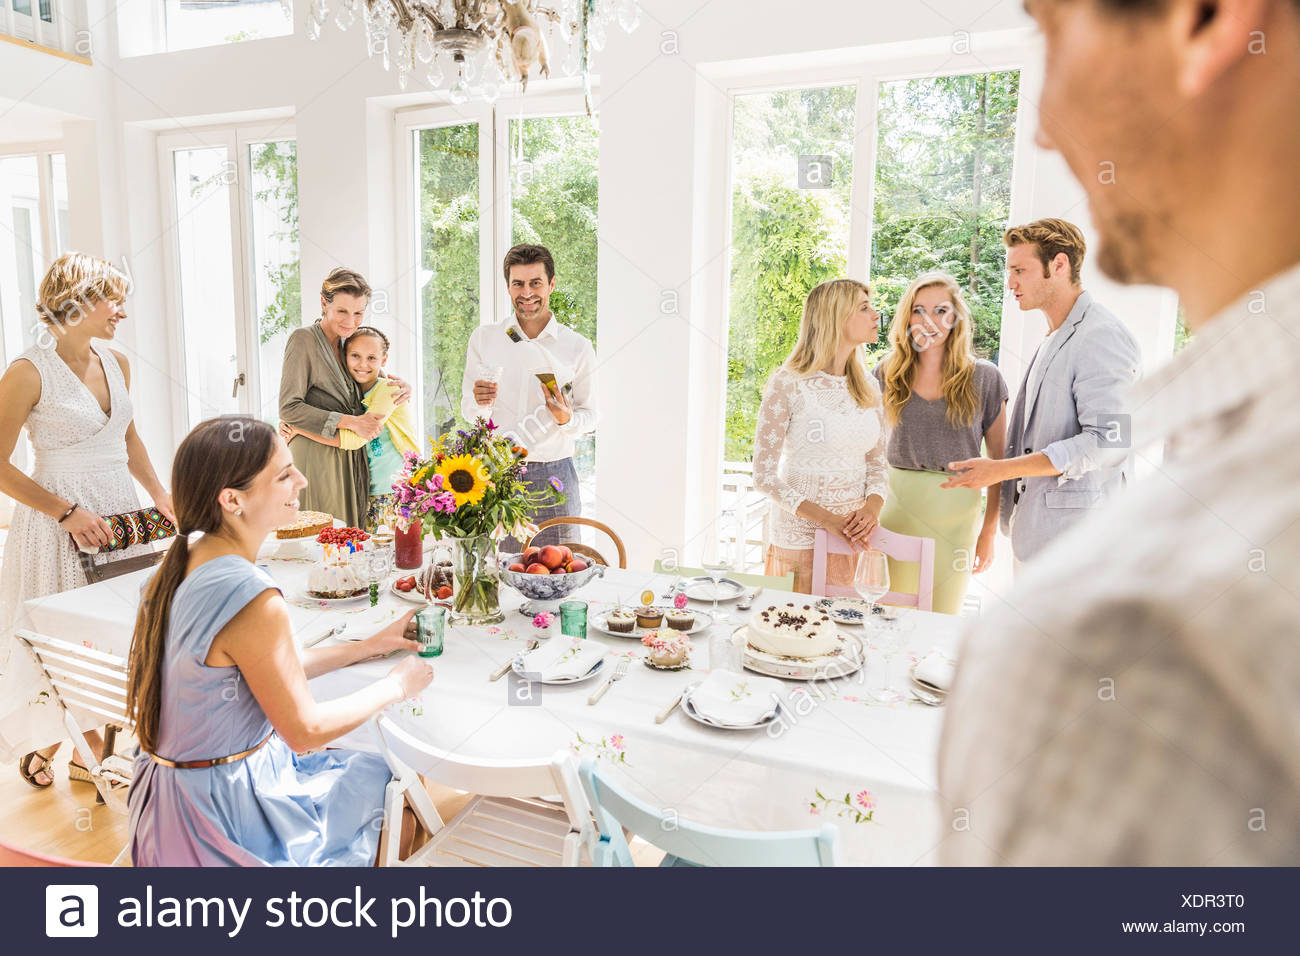 Family chatting around party table  in dining room - Stock Image